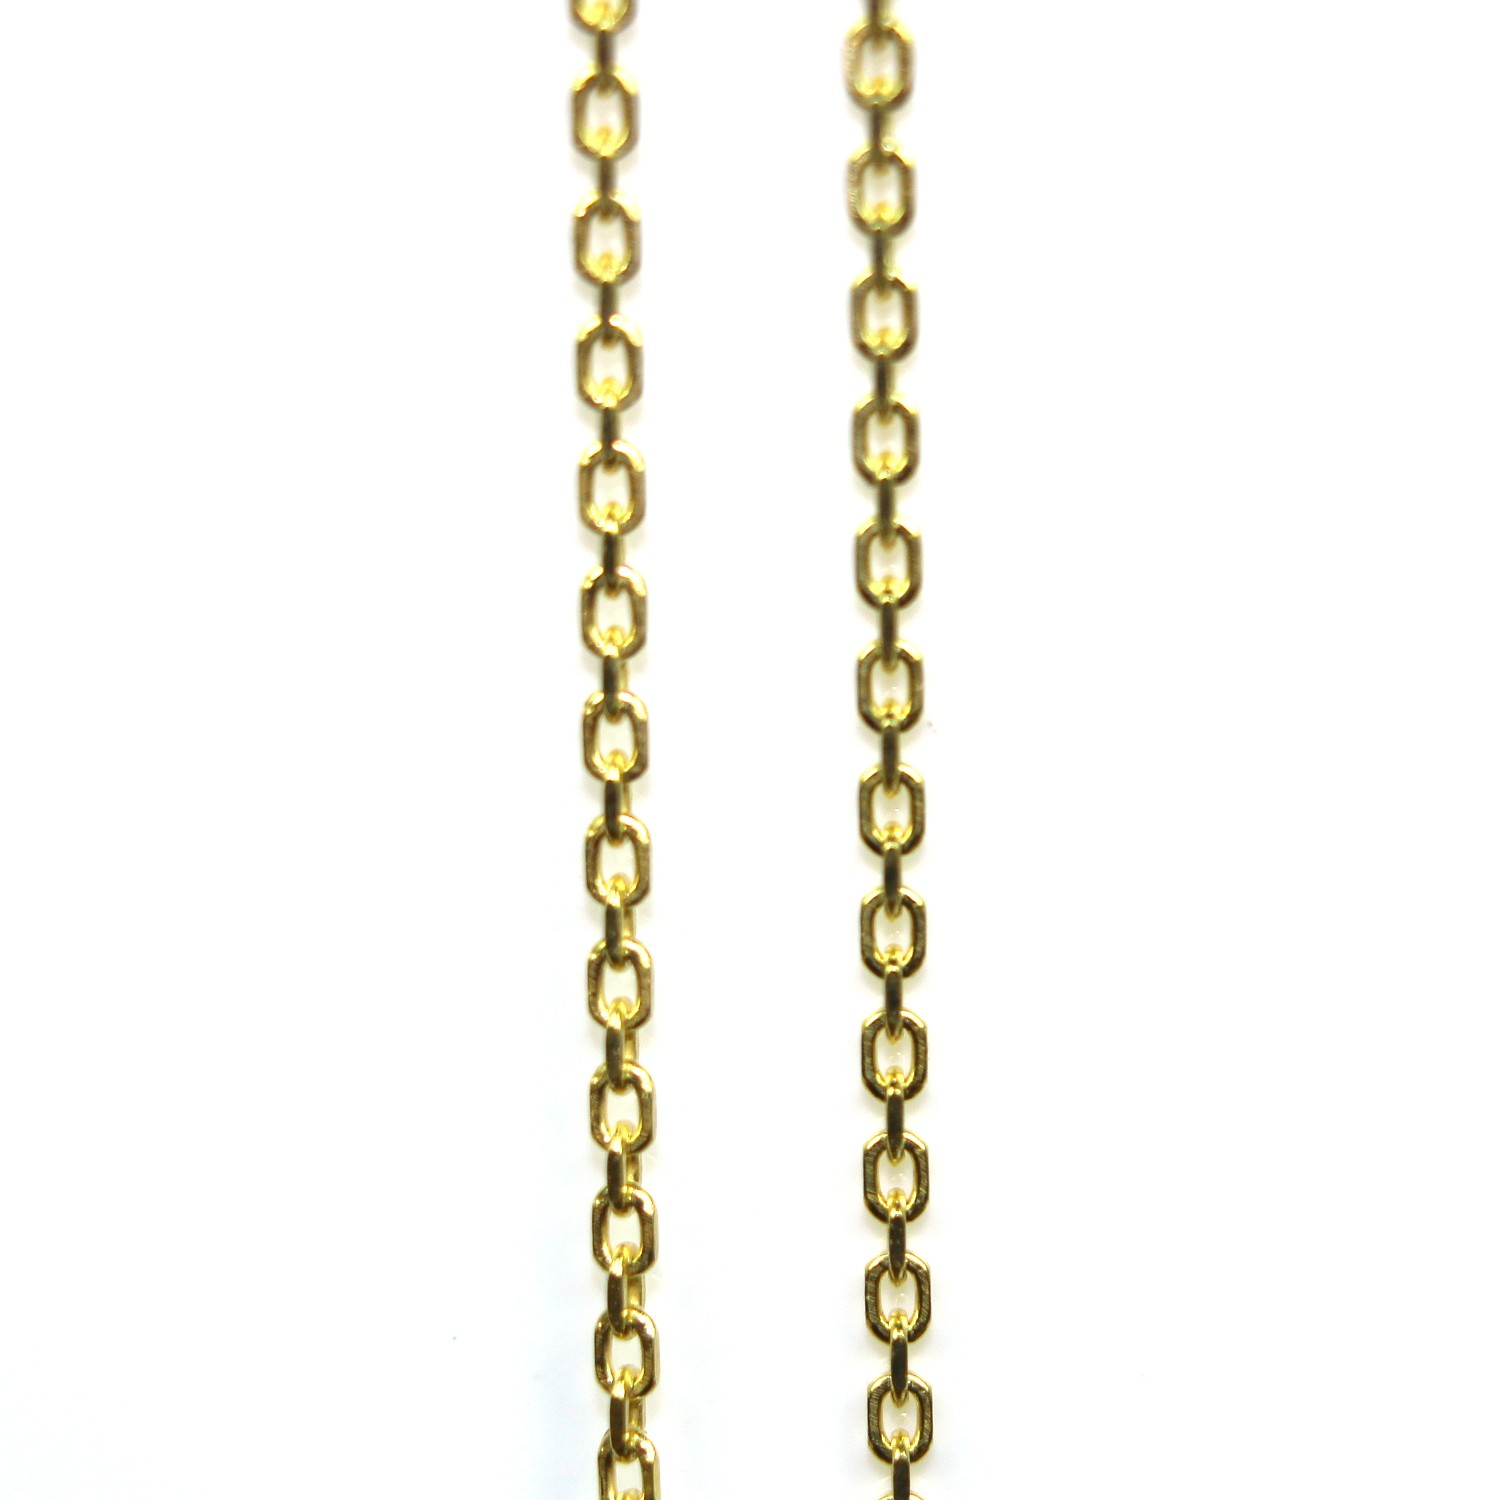 Sterling silver chain 46cm gold plated - links